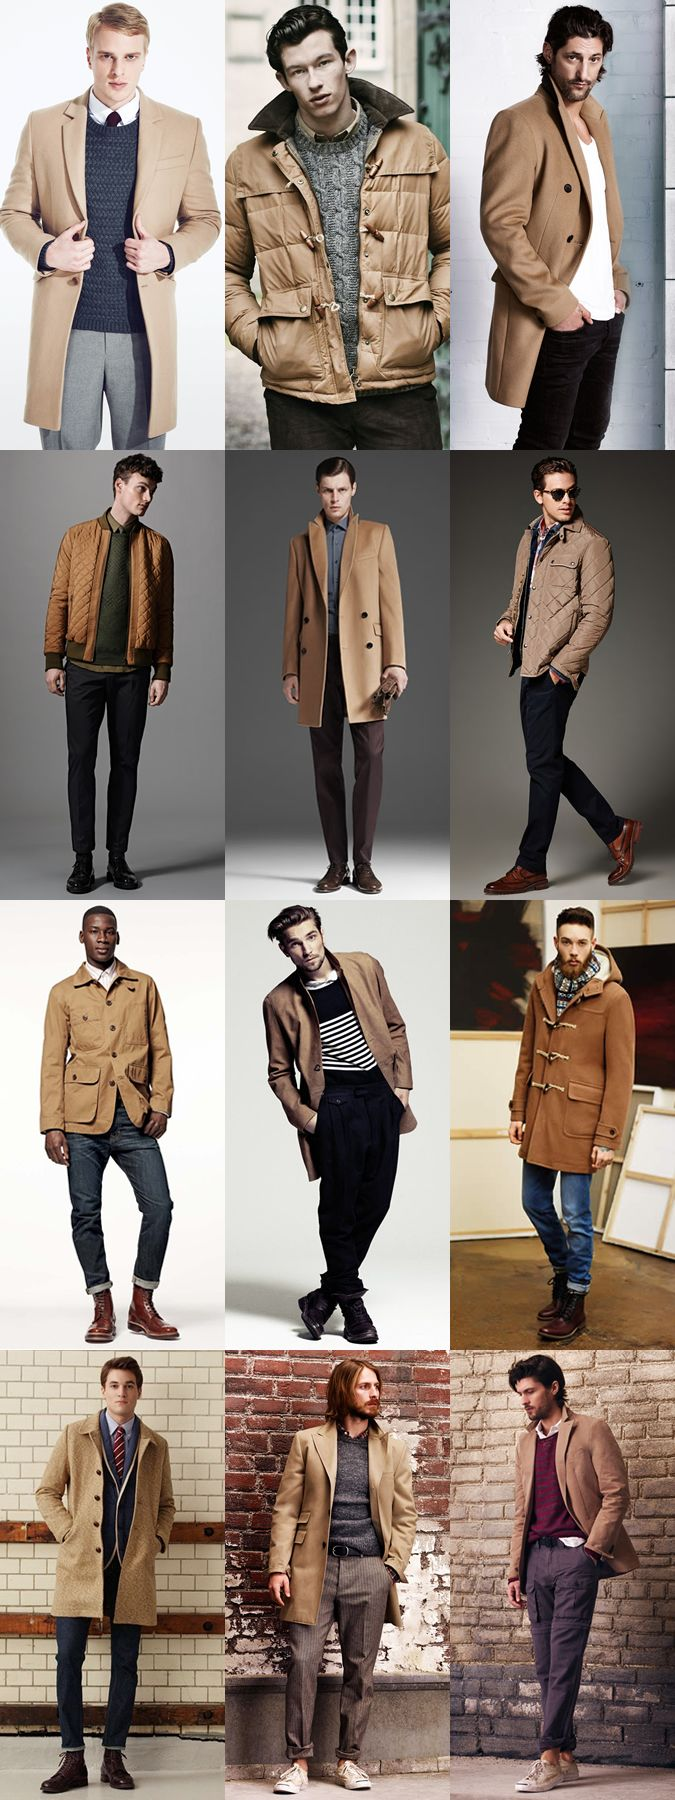 Men's Camel Outerwear Lookbook Outfit Inspiration